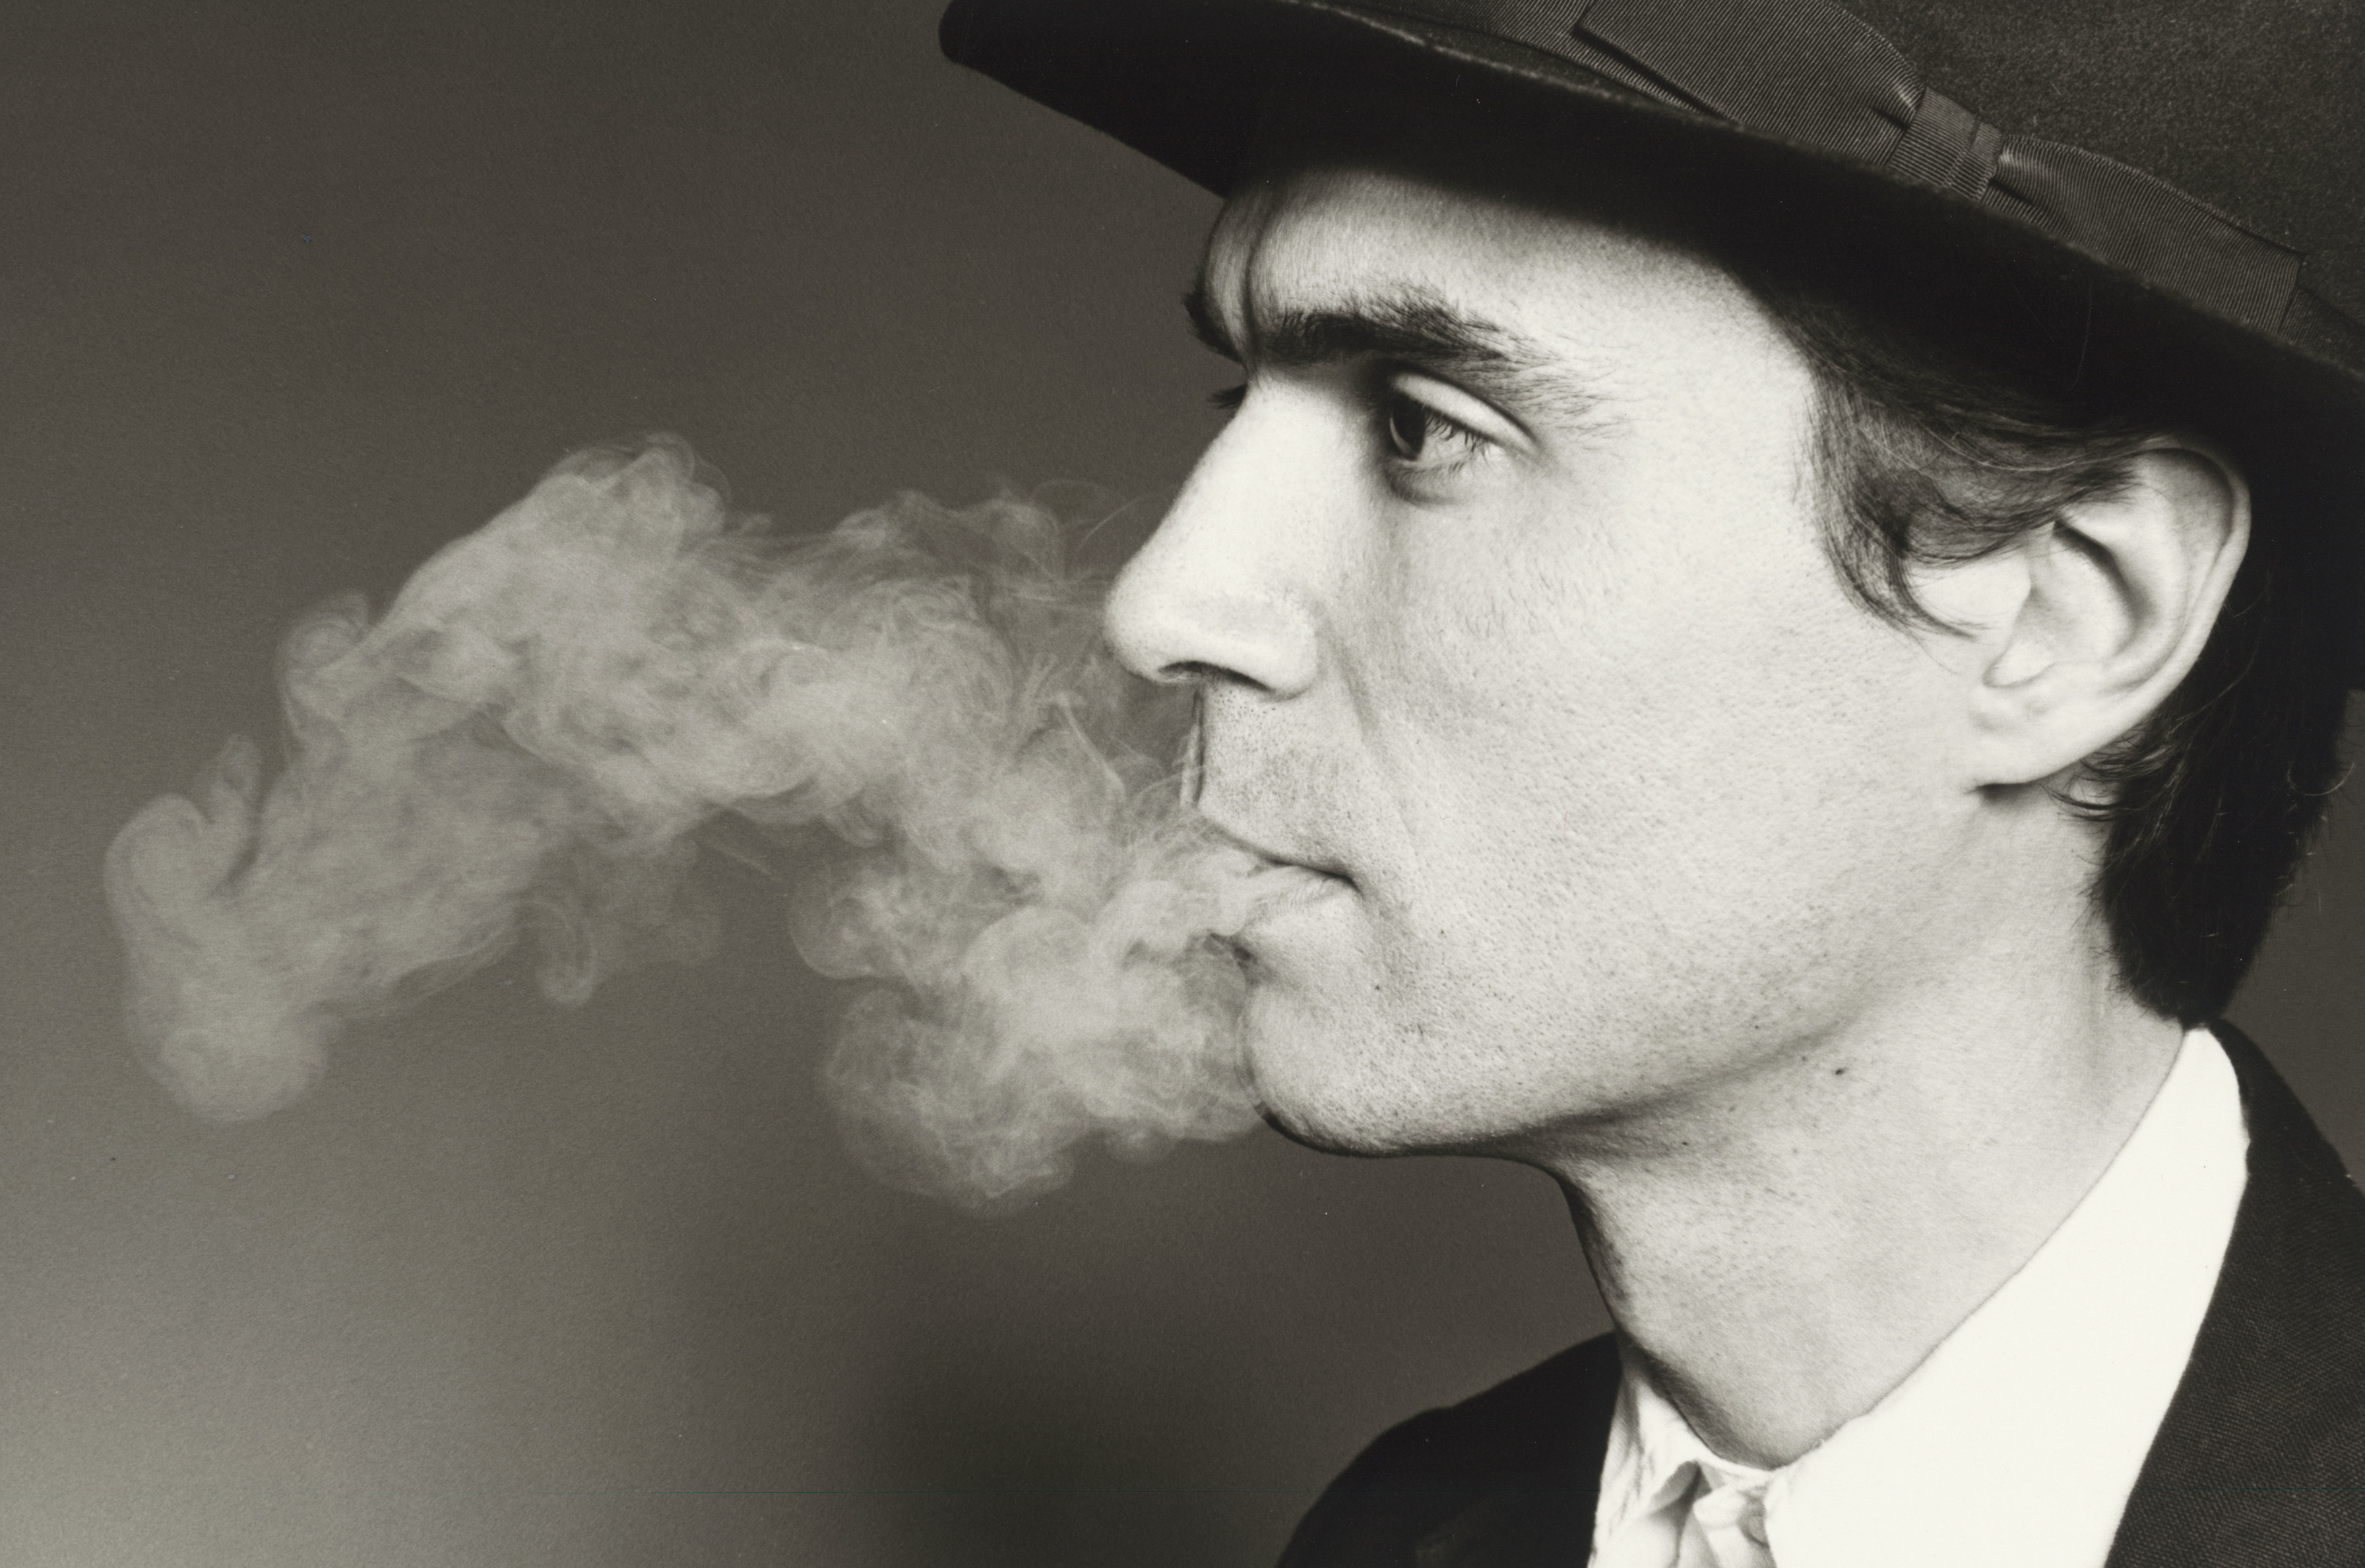 Photo of David Byrne by Marcia Resnick. Courtesy of National Portrait Gallery.